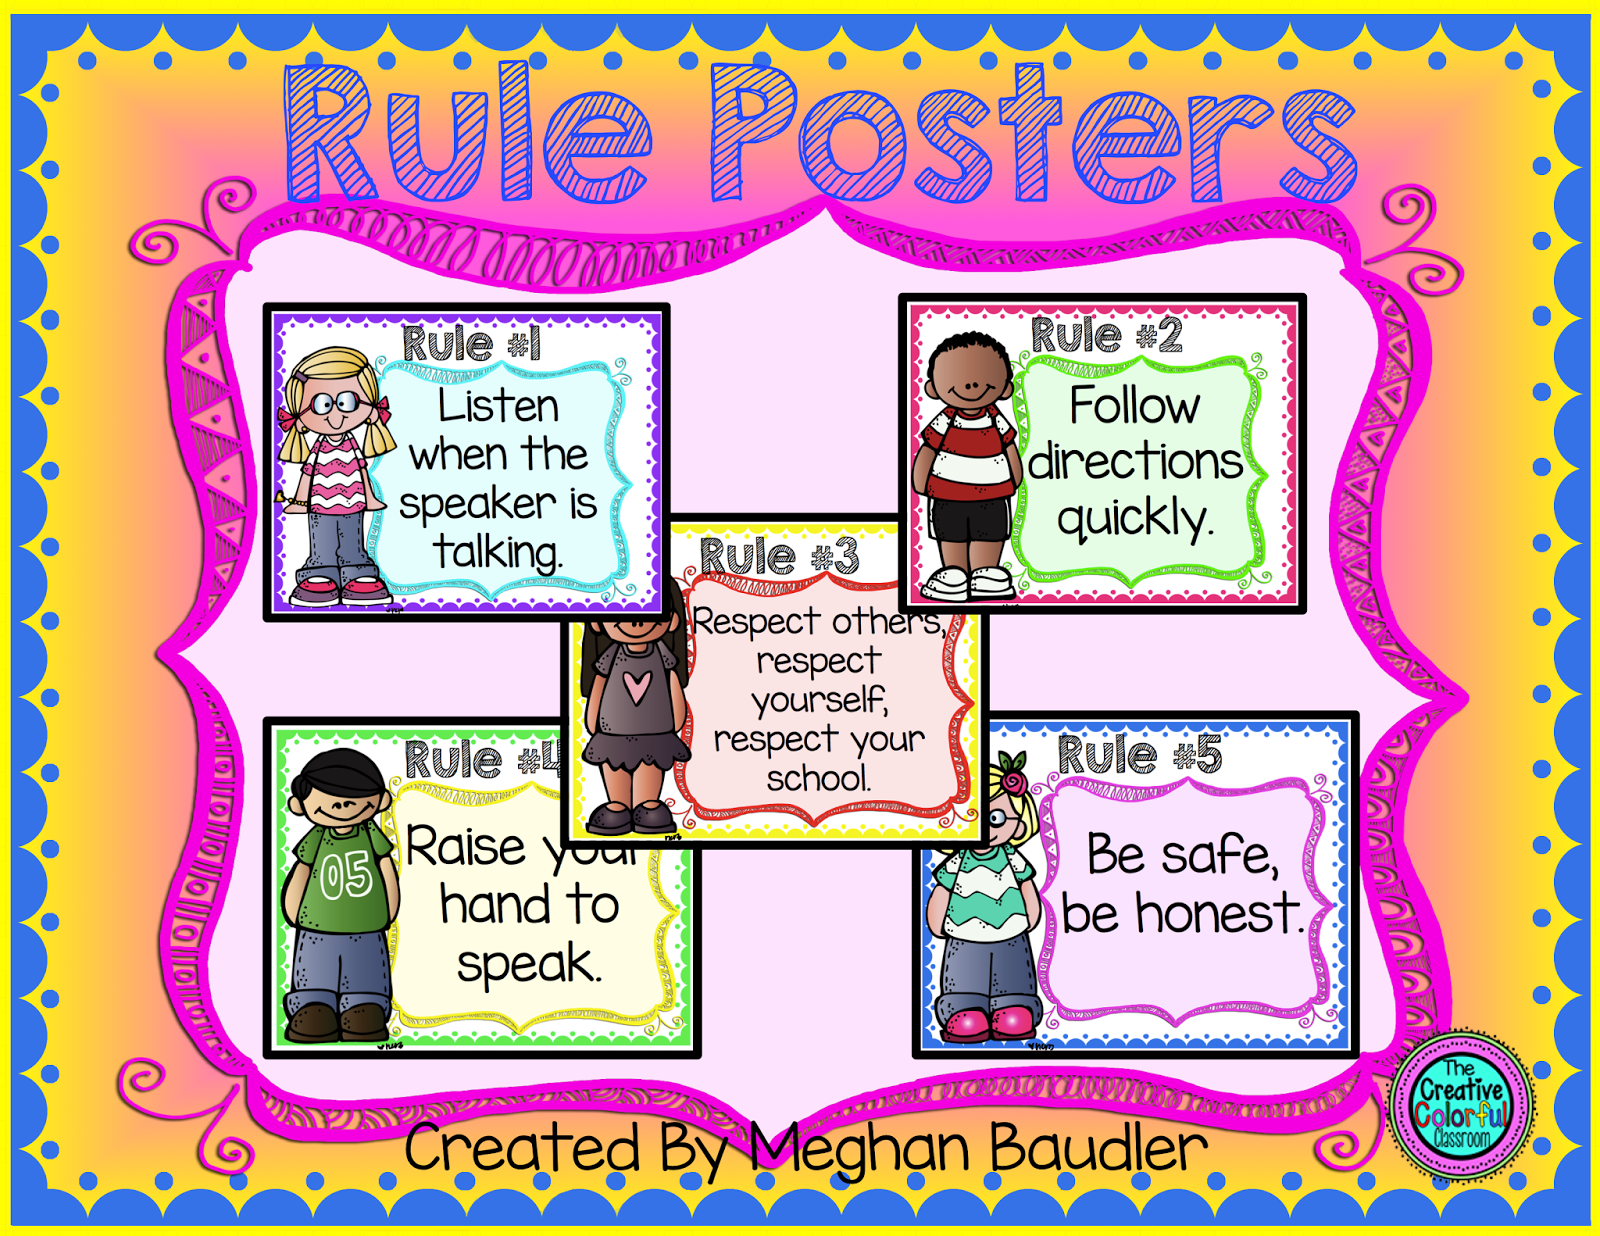 The Creative Colorful Classroom Class Rules Posters